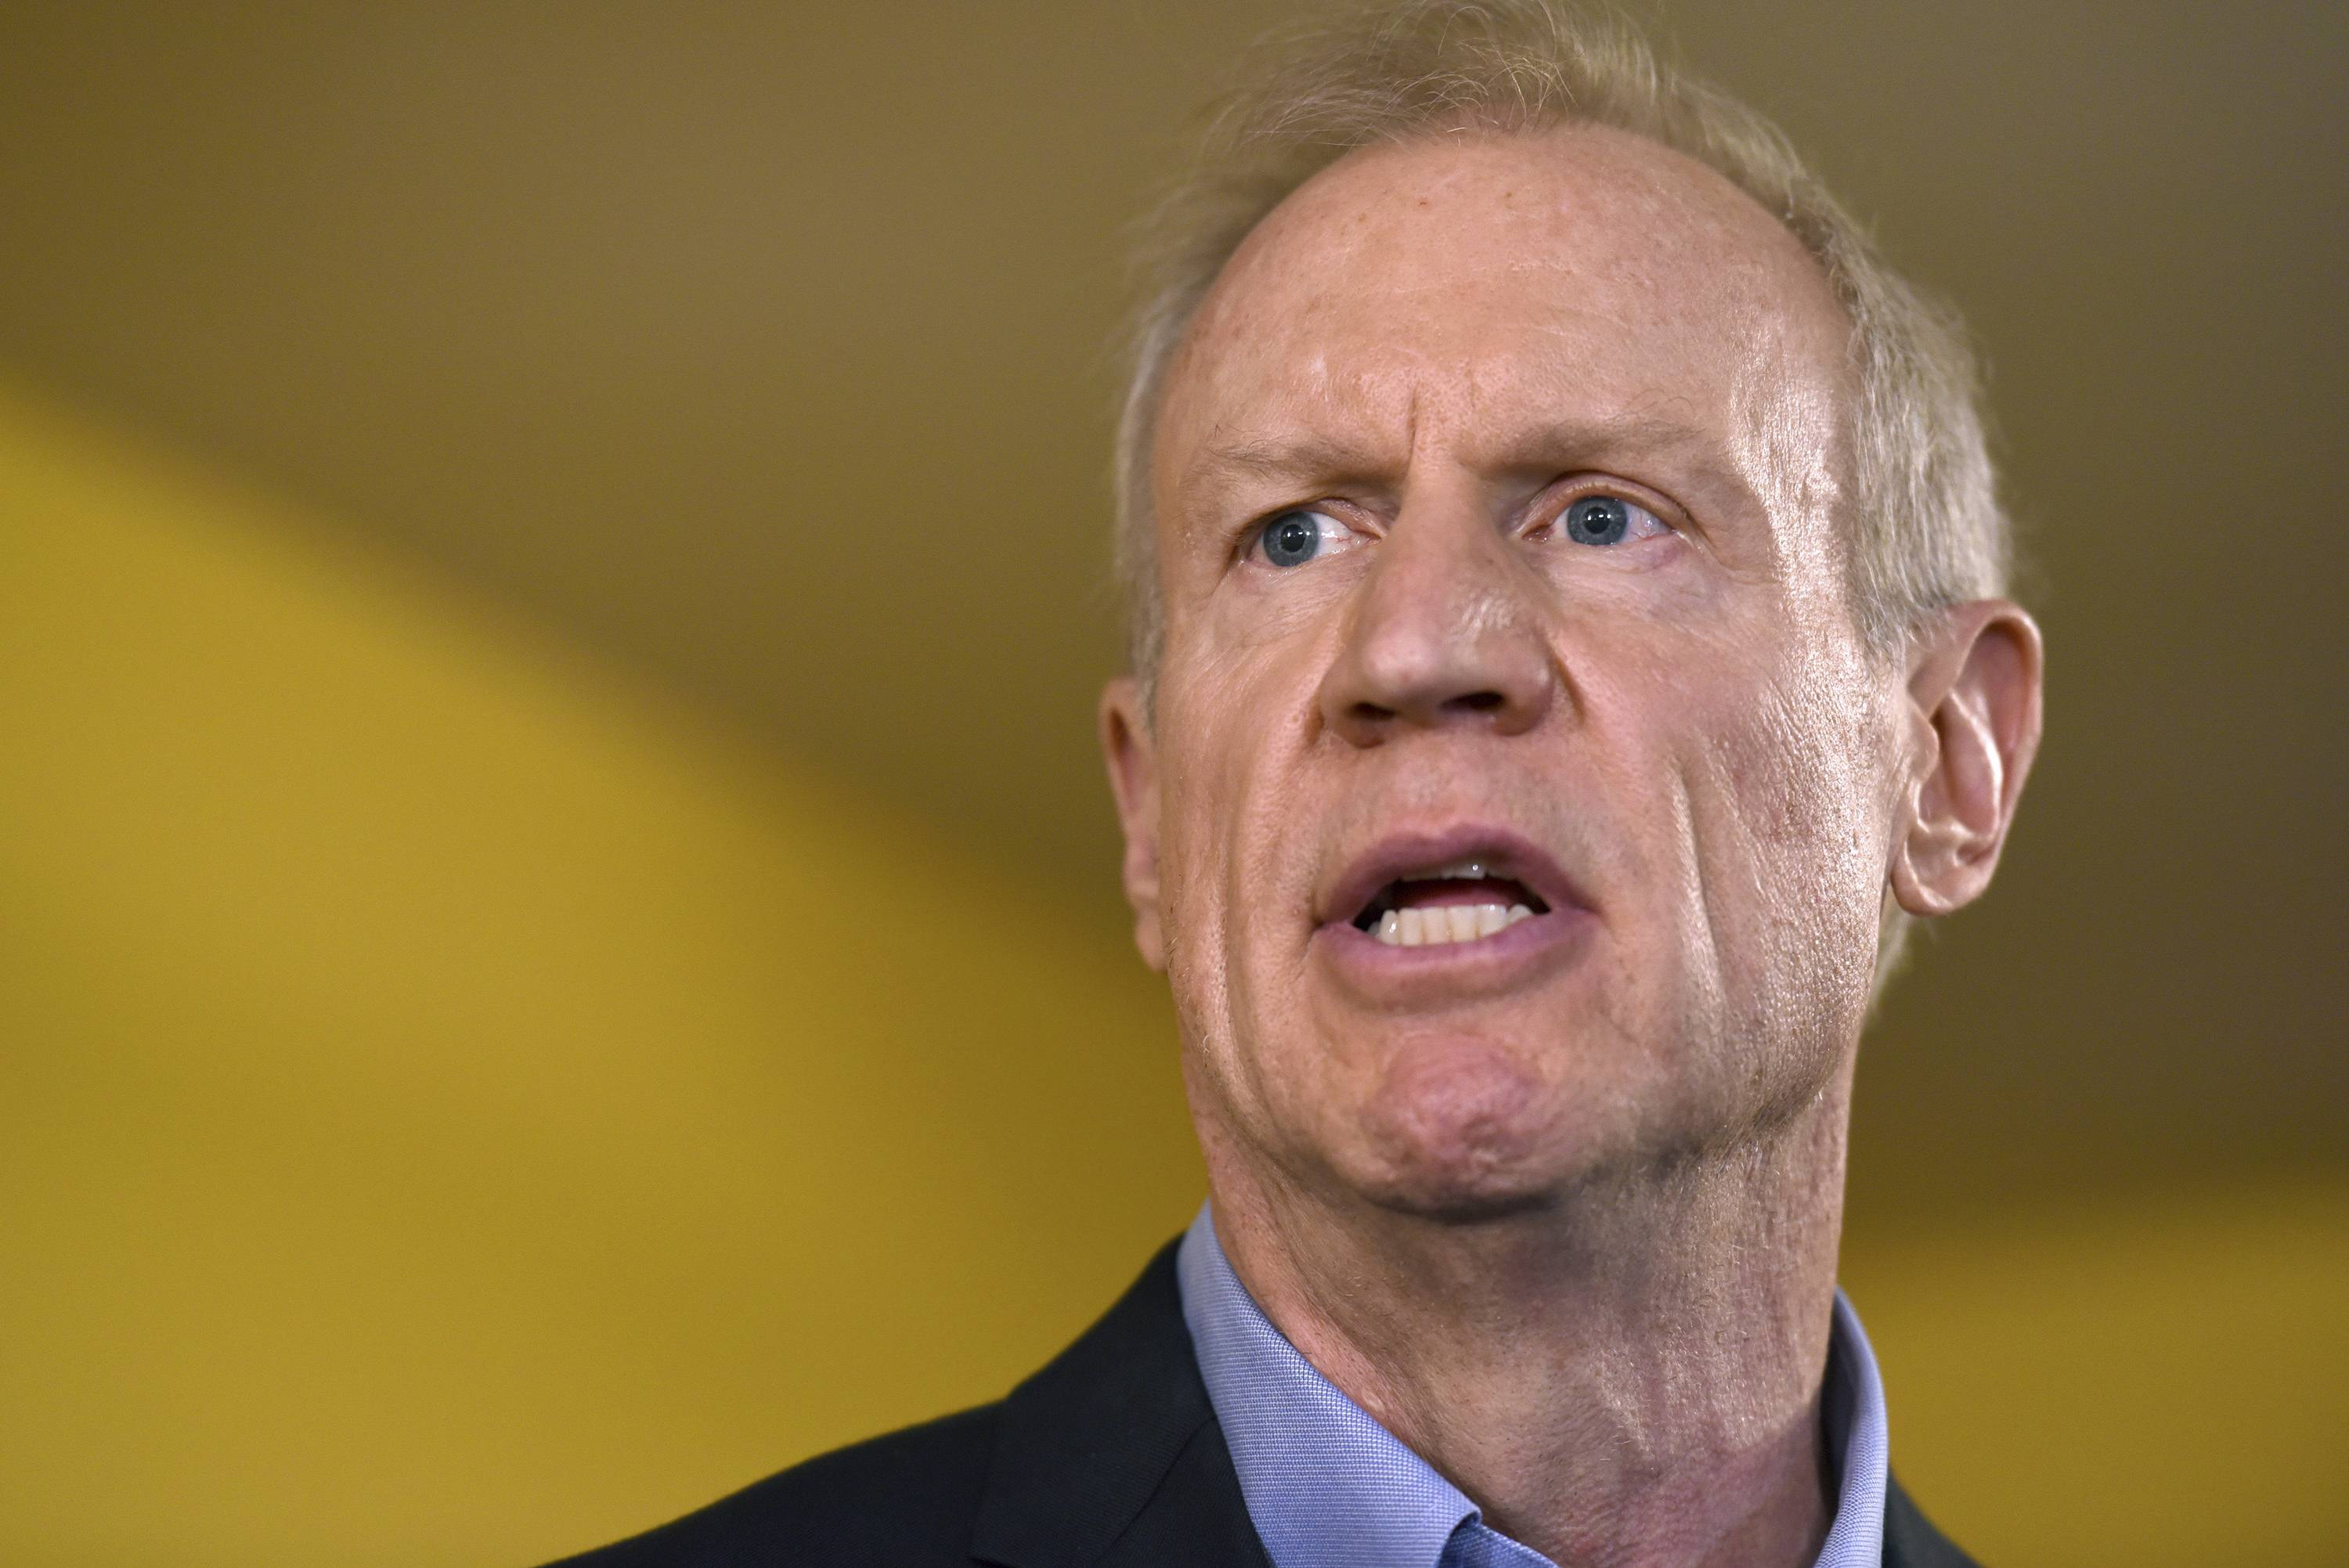 Illinois governor agrees to allow Medicaid for abortions